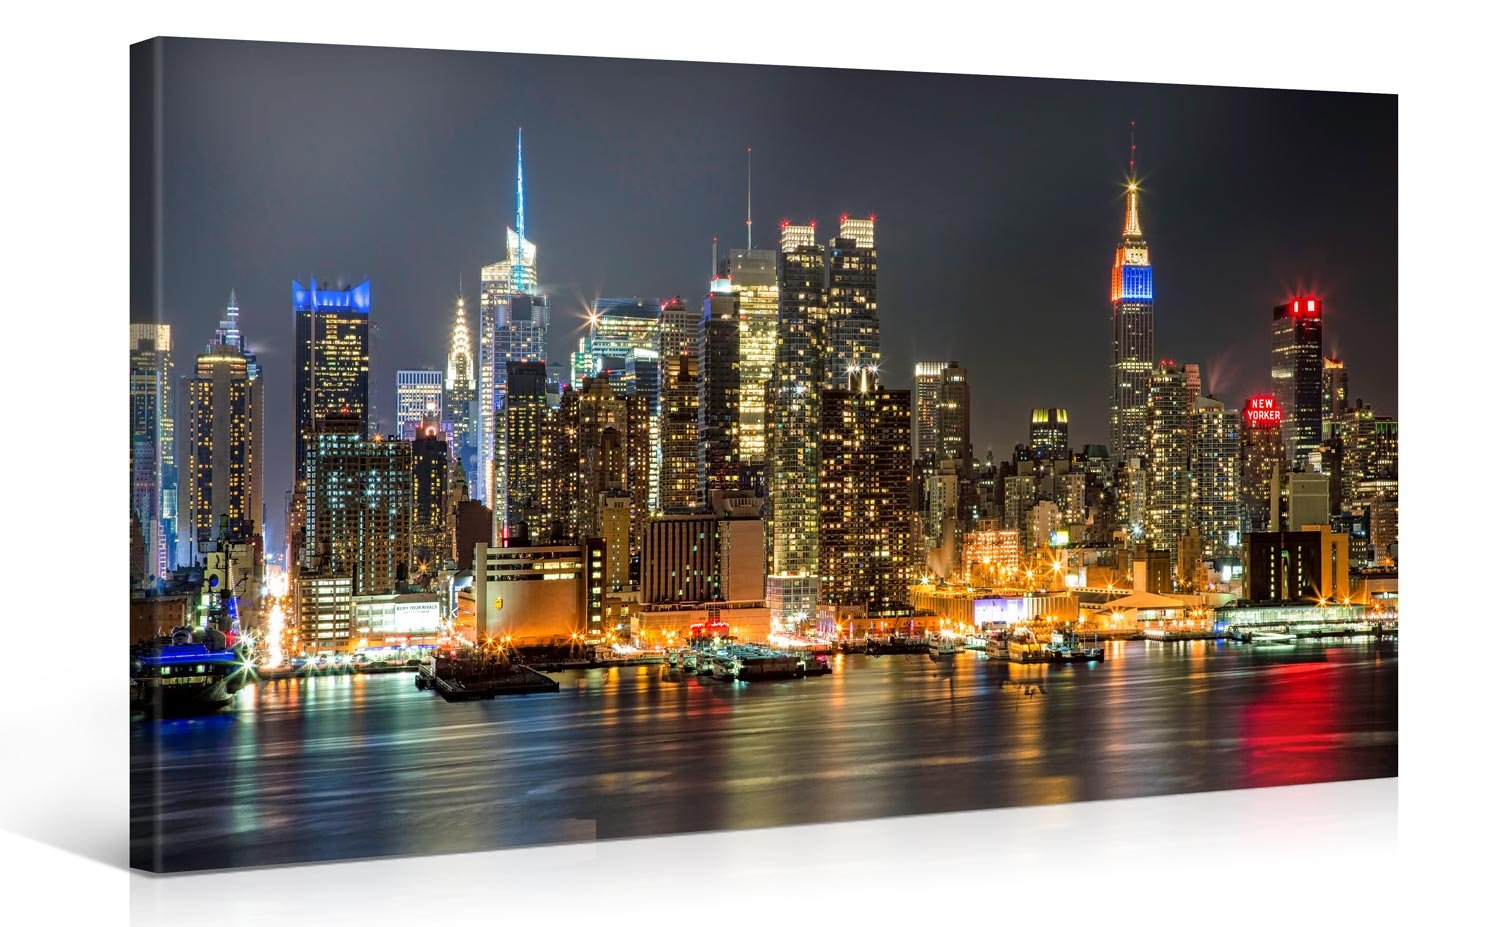 a4fadd60cd6 Large Canvas Print Wall Art – MANHATTAN NIGHT LIGHTS – 40 x 20 Inch Canvas  Picture Stretched On Wooden Frame – New York City Cityscape Giclee Canvas  ...